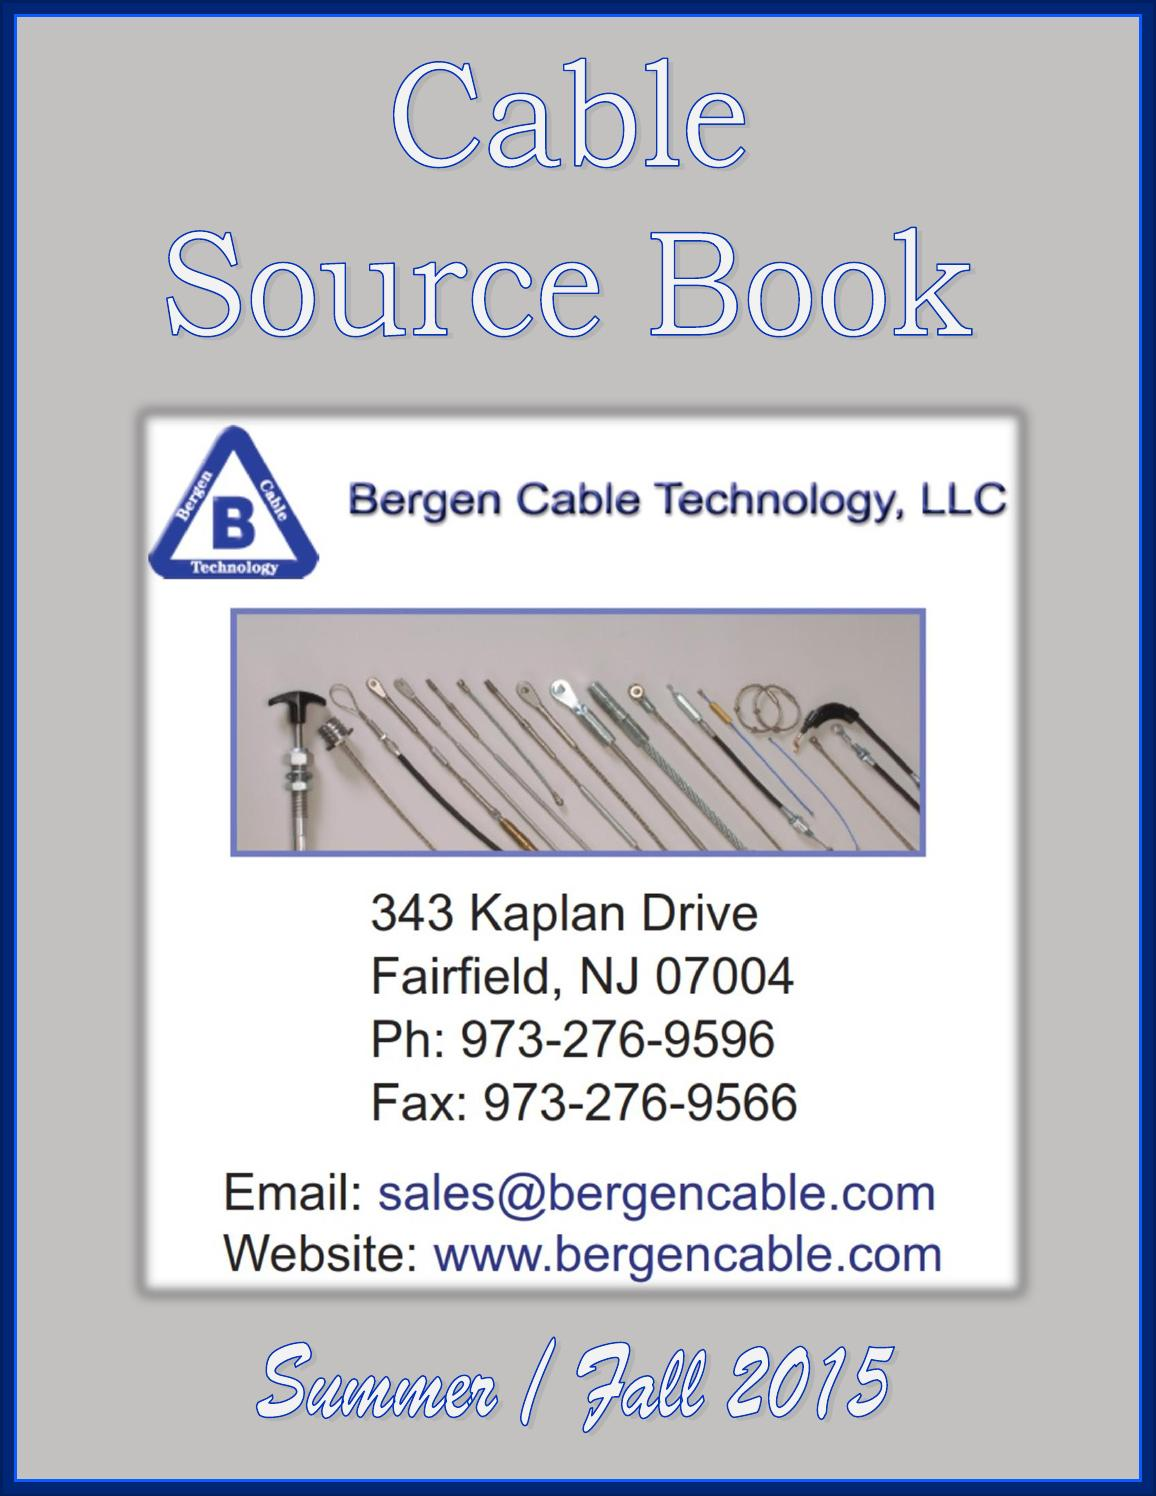 Cable Source Book By Federal Buyers Guide Inc Issuu Indeeco Electric Heater Wiring Diagram Free Download